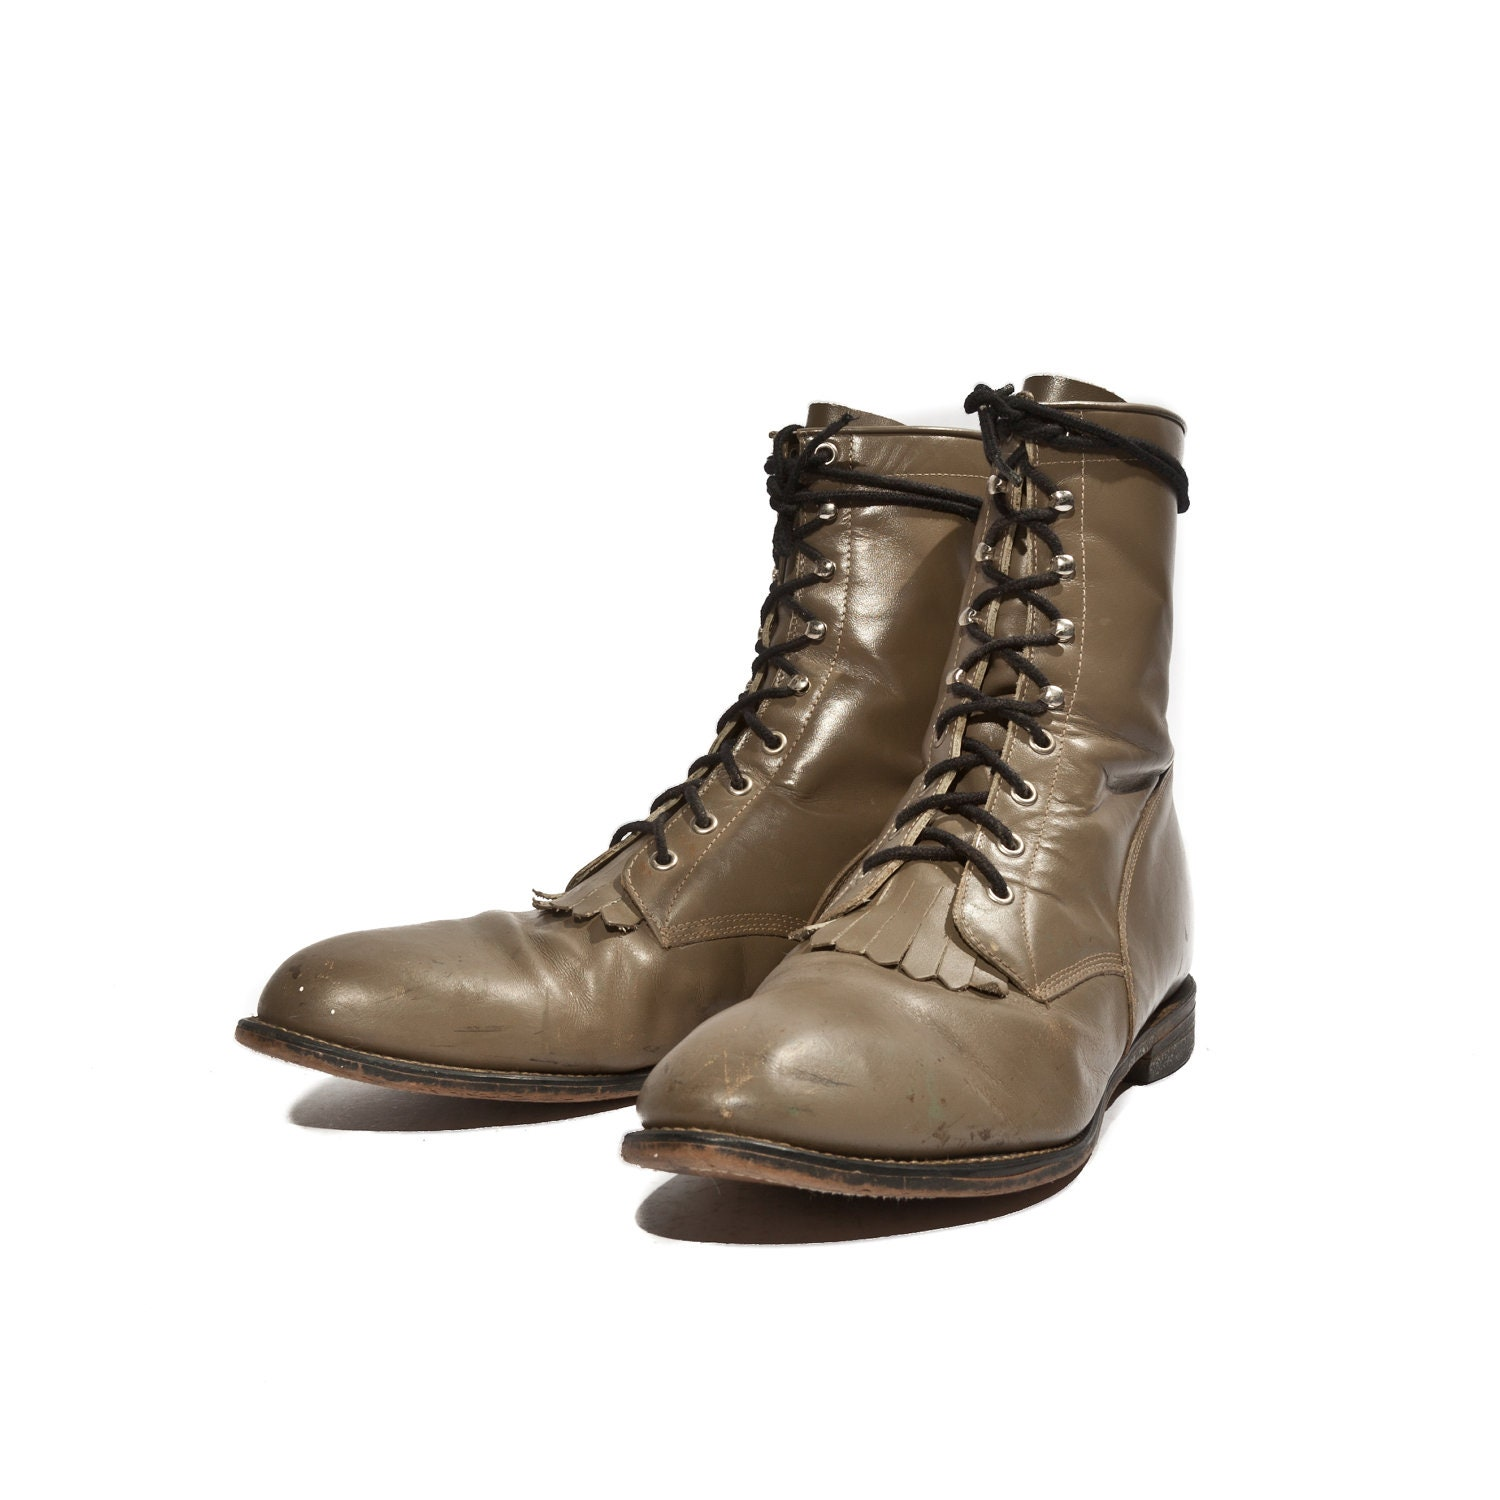 s brown olive justin roper lace up boots kiltie by shopndg